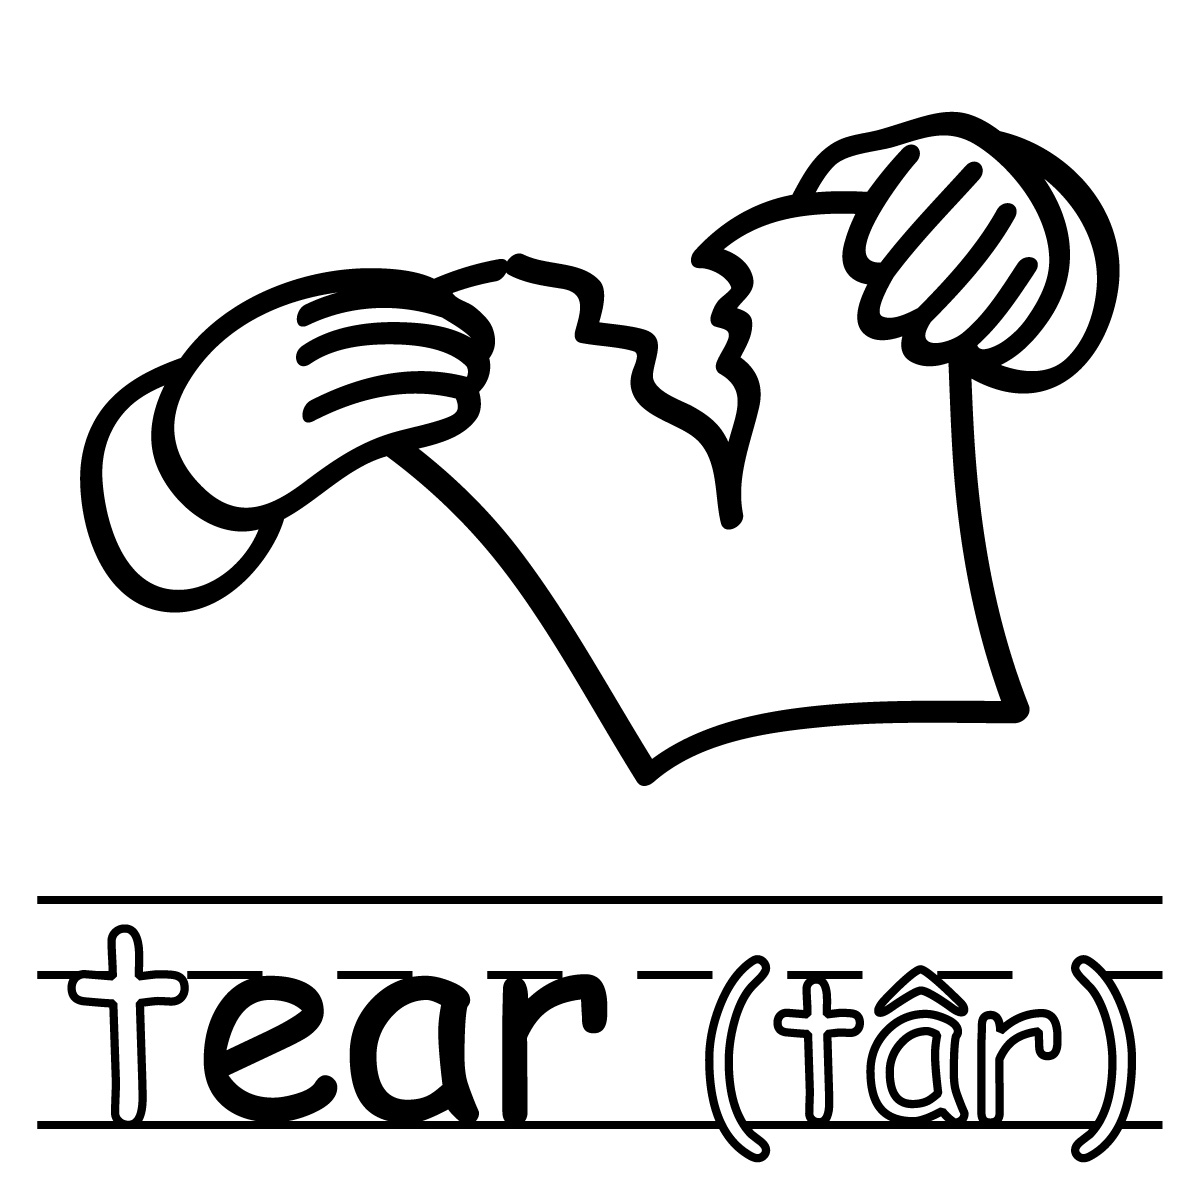 Free Tear Clipart Black And White, Download Free Clip Art.